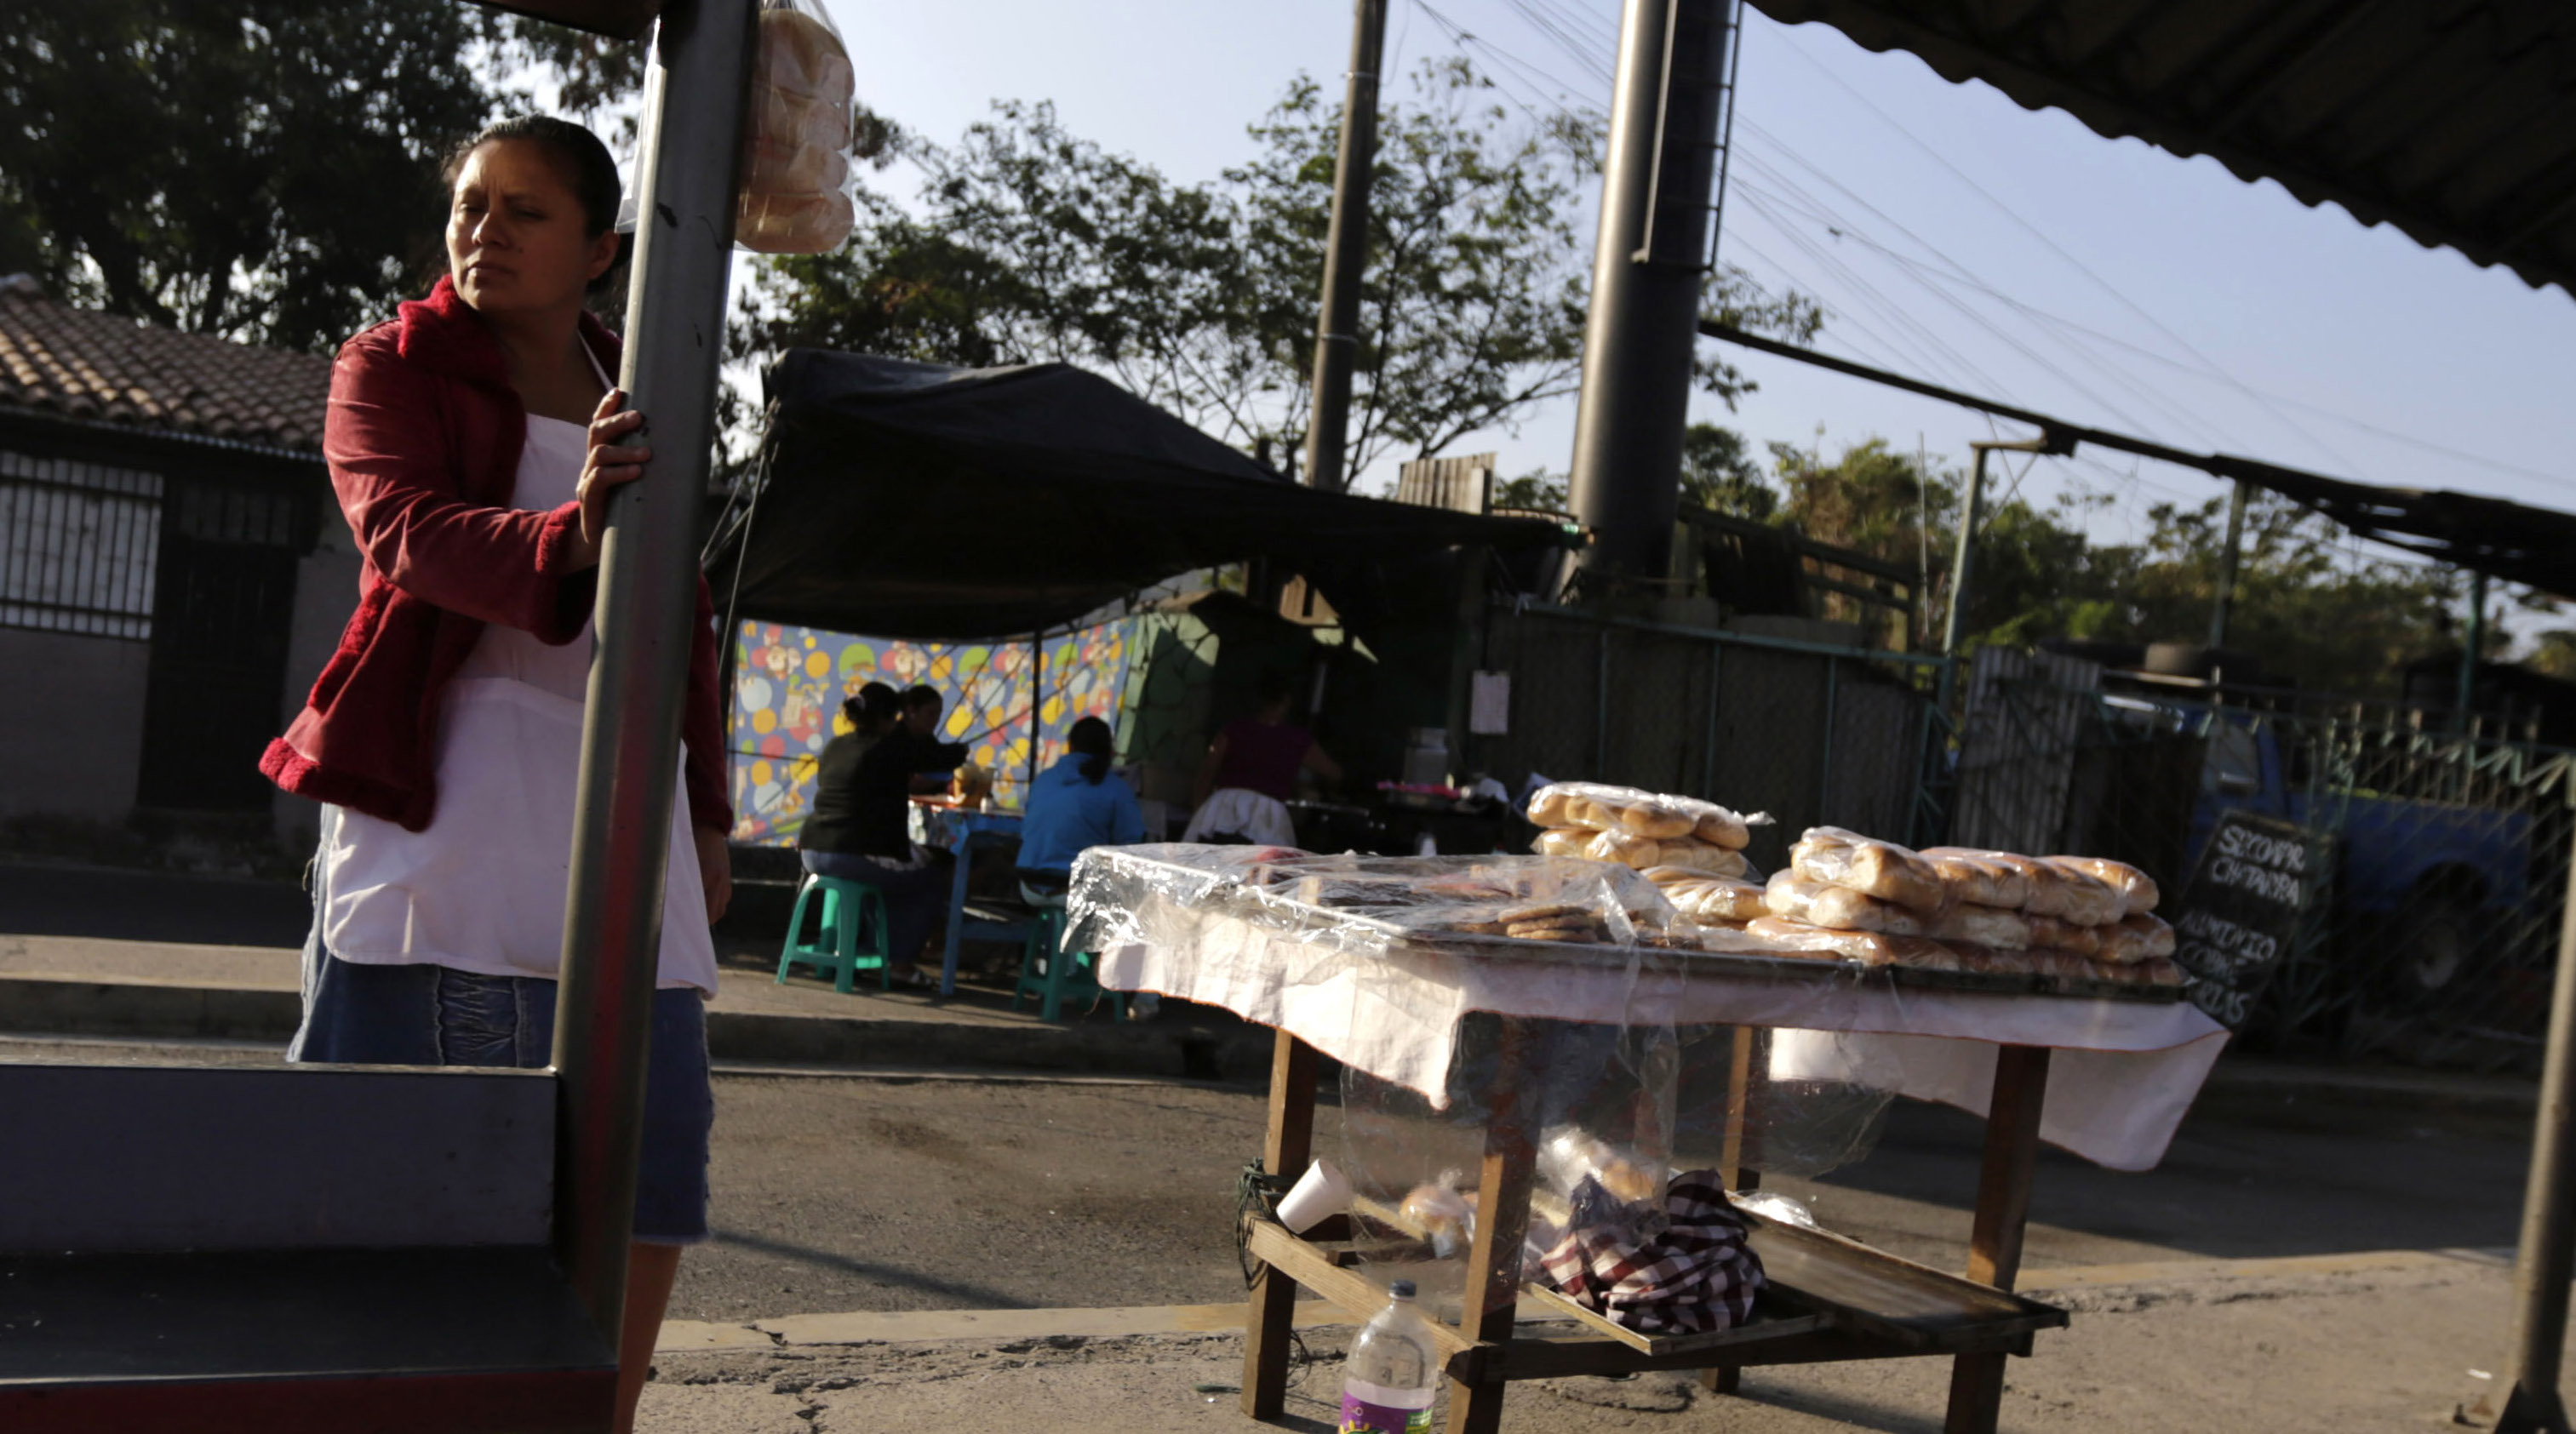 A street food vendor, who sells bread, waits for customers near in downtown San Salvador March 7, 2014. Salvadorans will go to the polls on March 9 in a second-round presidential election runoff.